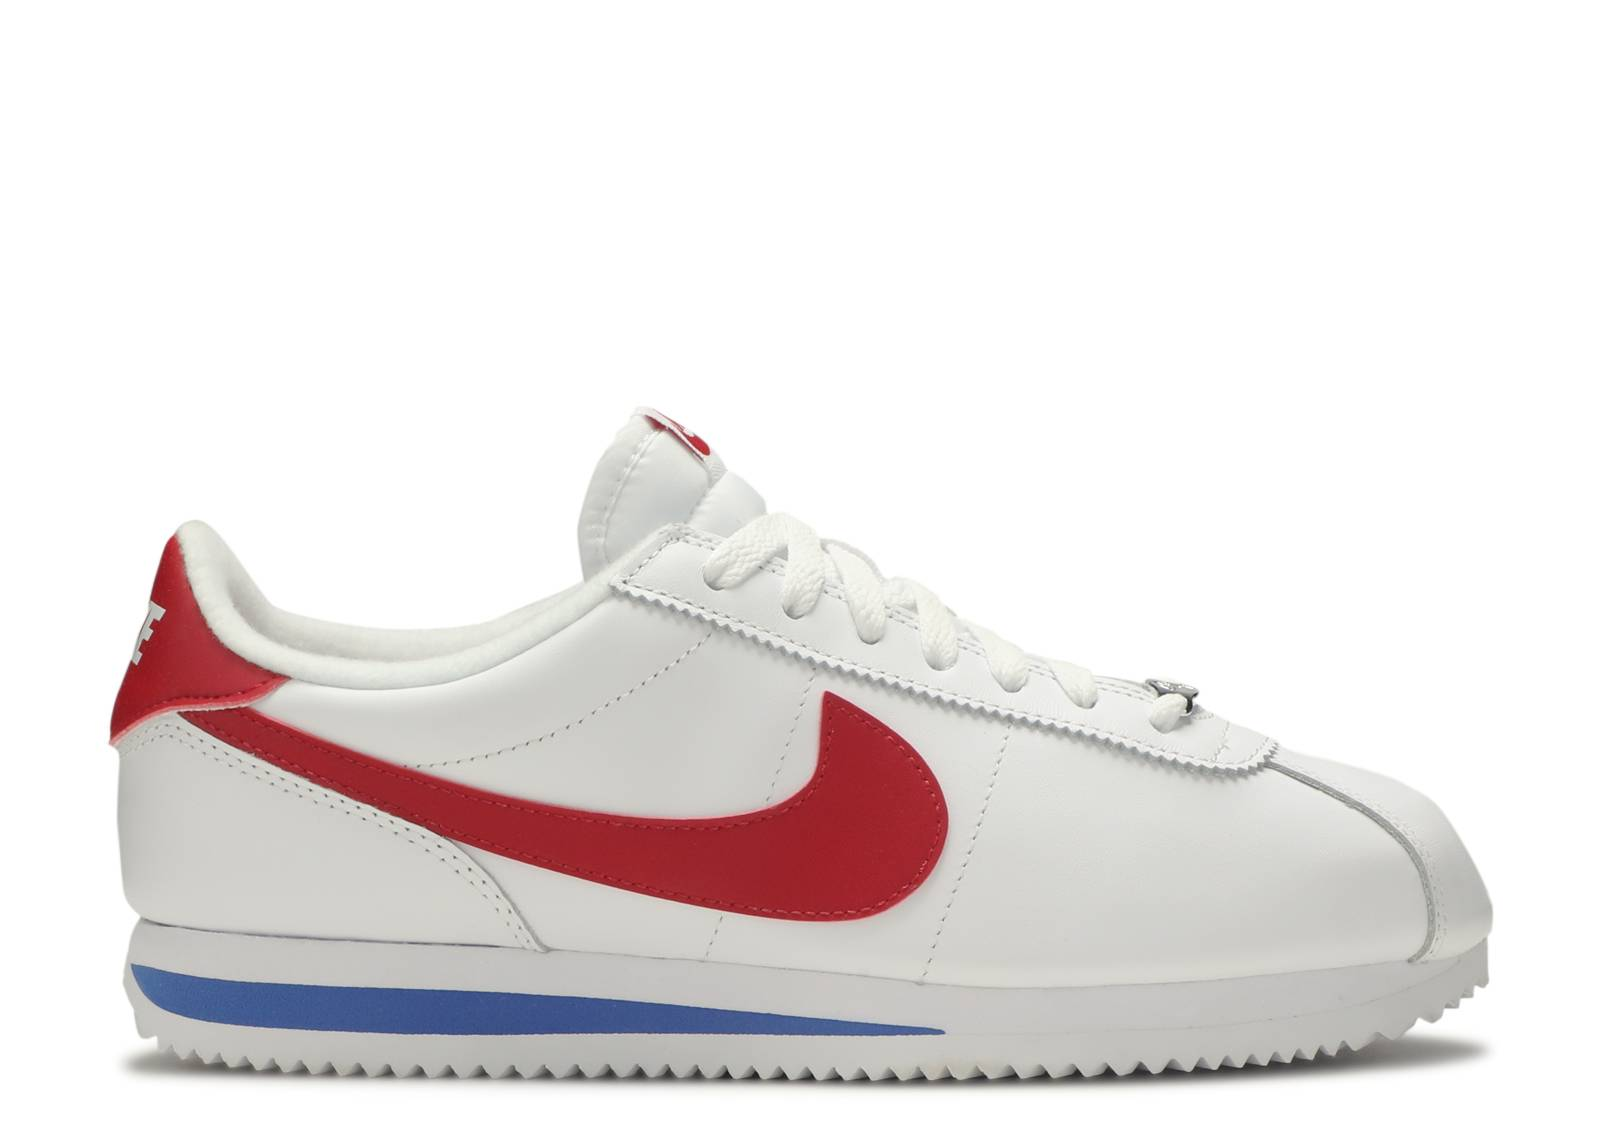 Nike Cortez White Shoes